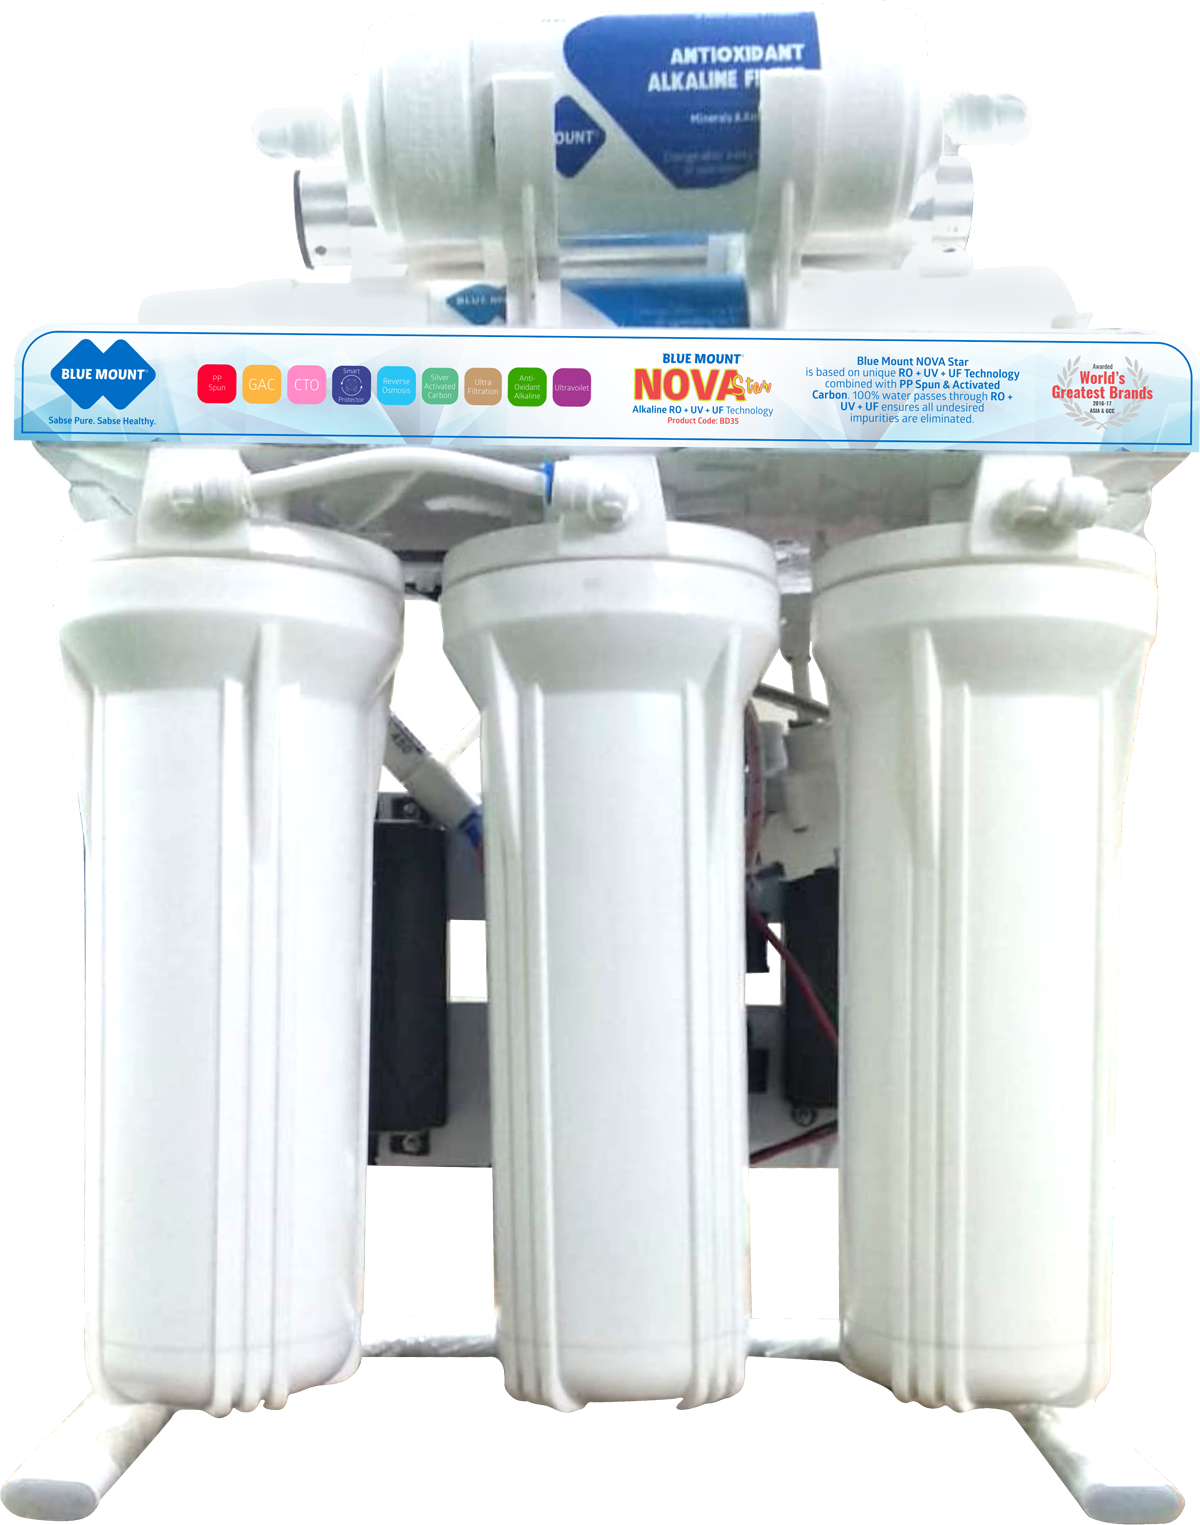 Blue mount Nova Star Alkaine RO+UV+UF Water Purifier